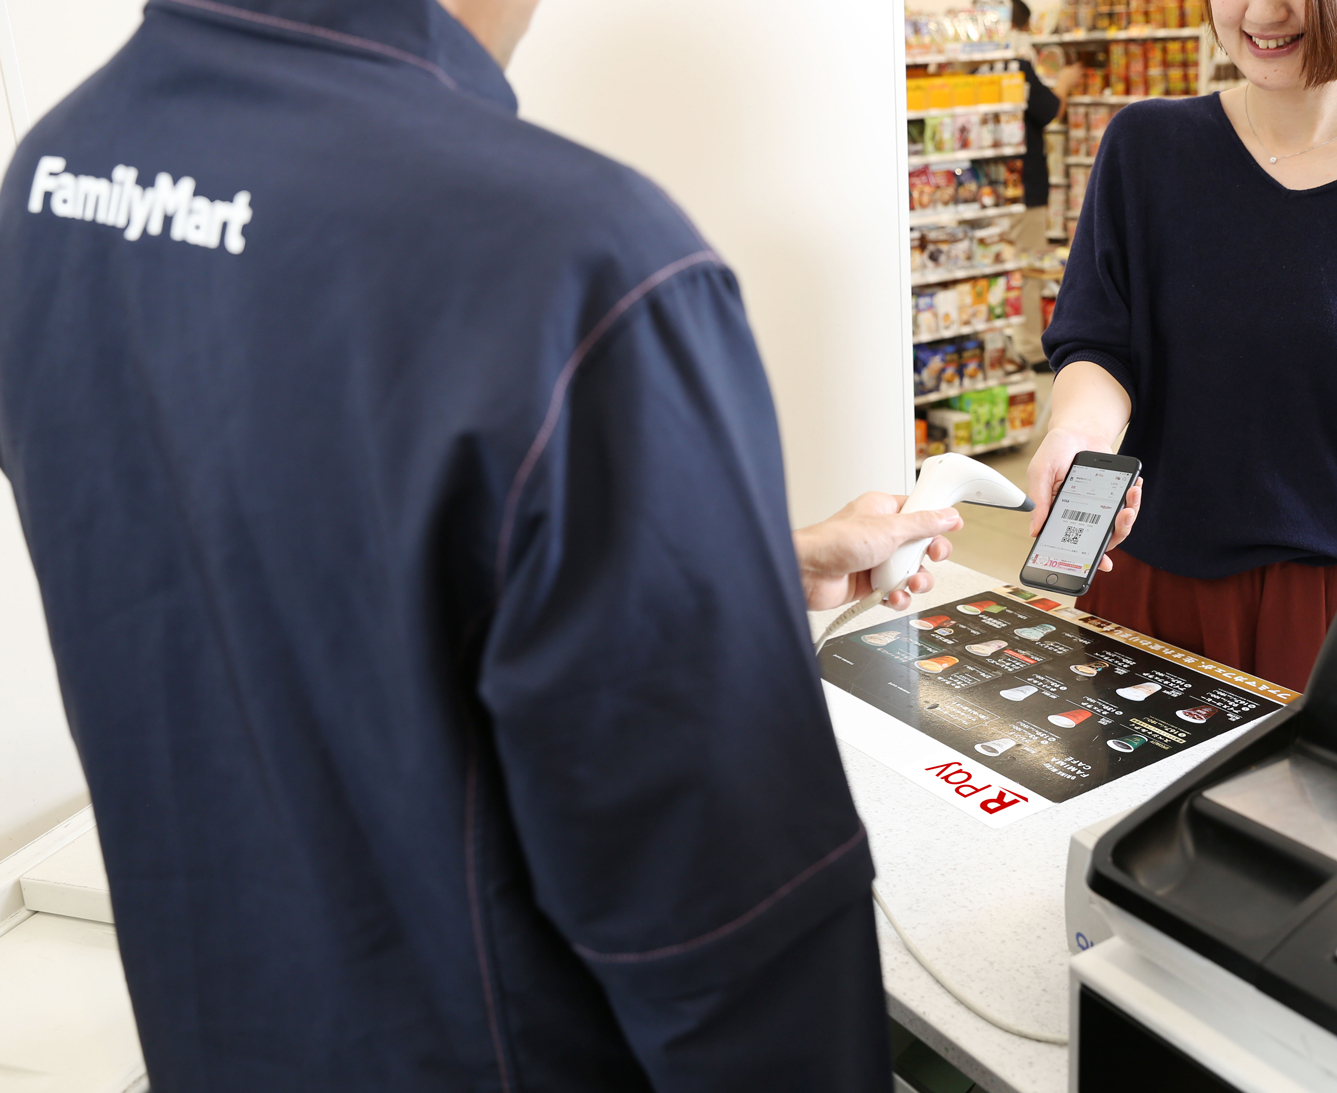 But the service isn't just for small merchants: Payment with the Rakuten Pay app is currently available at over 14,000 convenience stores across Japan through a partnership with Lawson, a number which will soon jump to over 30,000 when a new partnership with the Family Mart nationwide convenience store chain rolls out this month